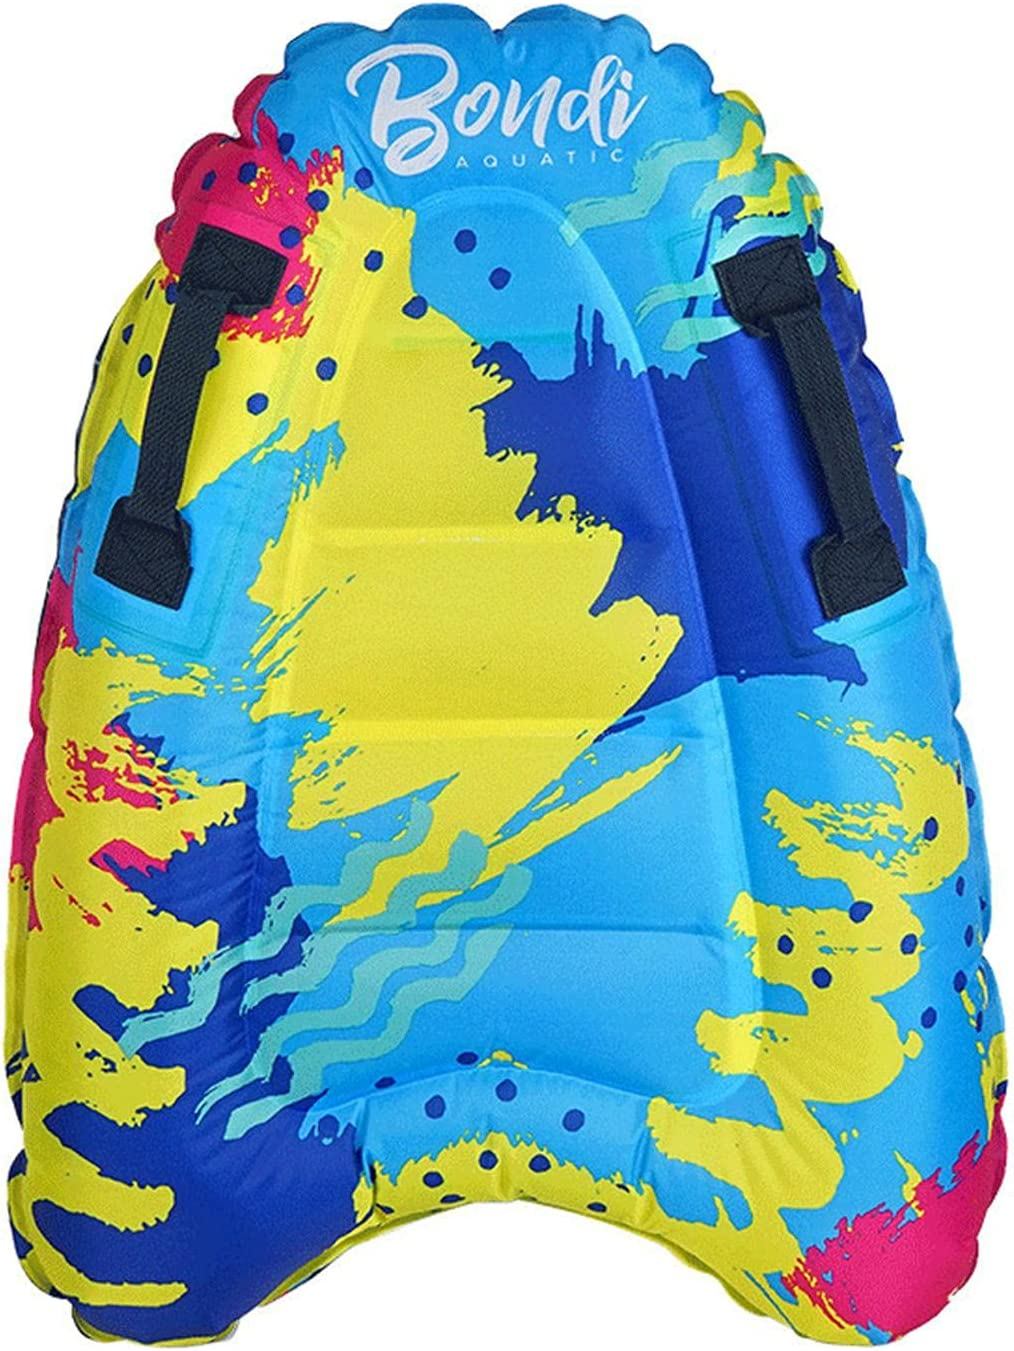 Outlet SALE GEZICHTA Inflatable Limited Special Price Surfing Body Board with Swimming Flo Handles